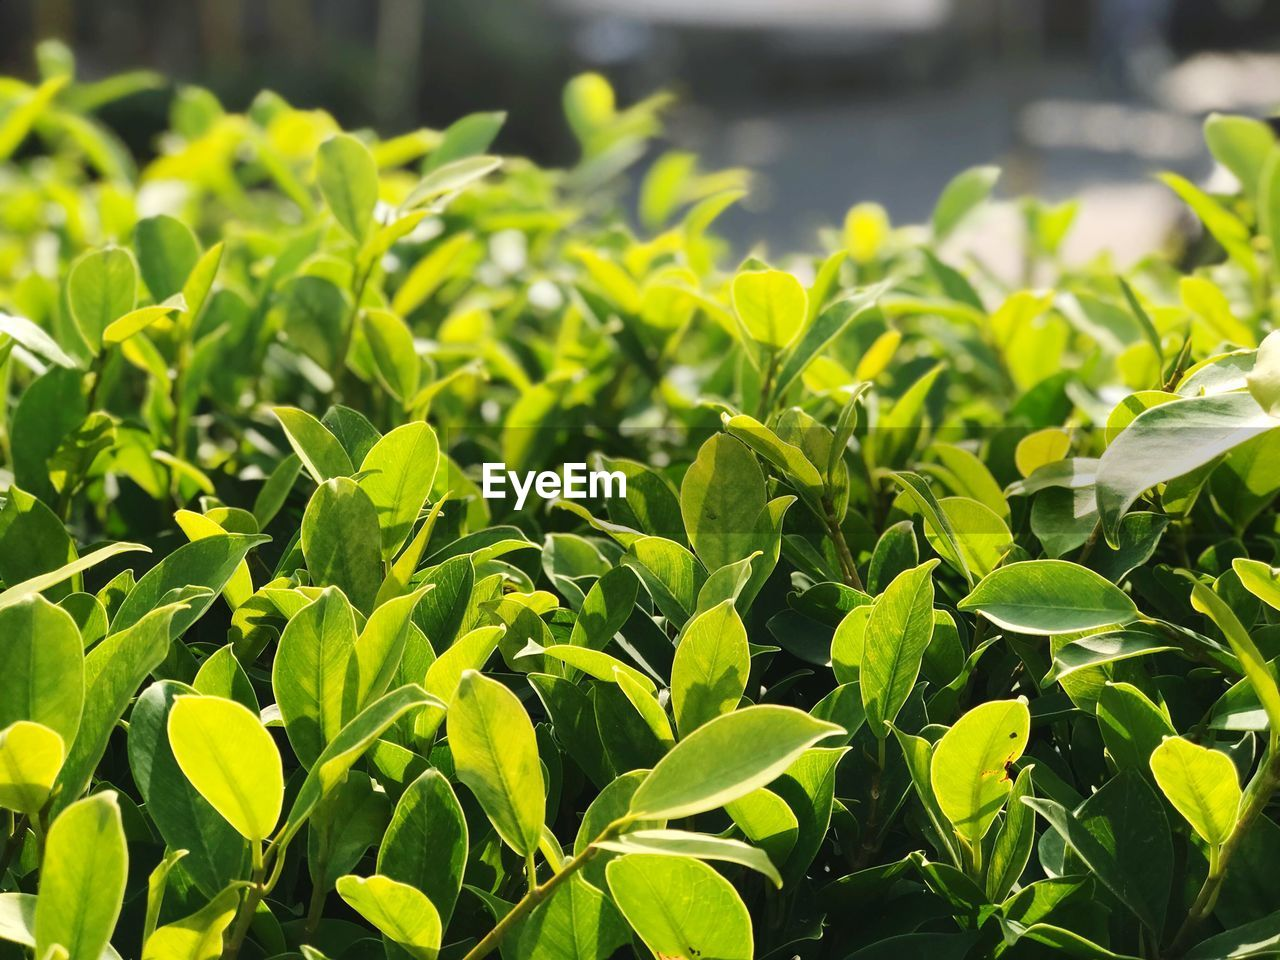 plant part, green color, leaf, growth, plant, beauty in nature, no people, nature, day, close-up, sunlight, outdoors, focus on foreground, field, land, selective focus, freshness, tranquility, vegetable, botany, leaves